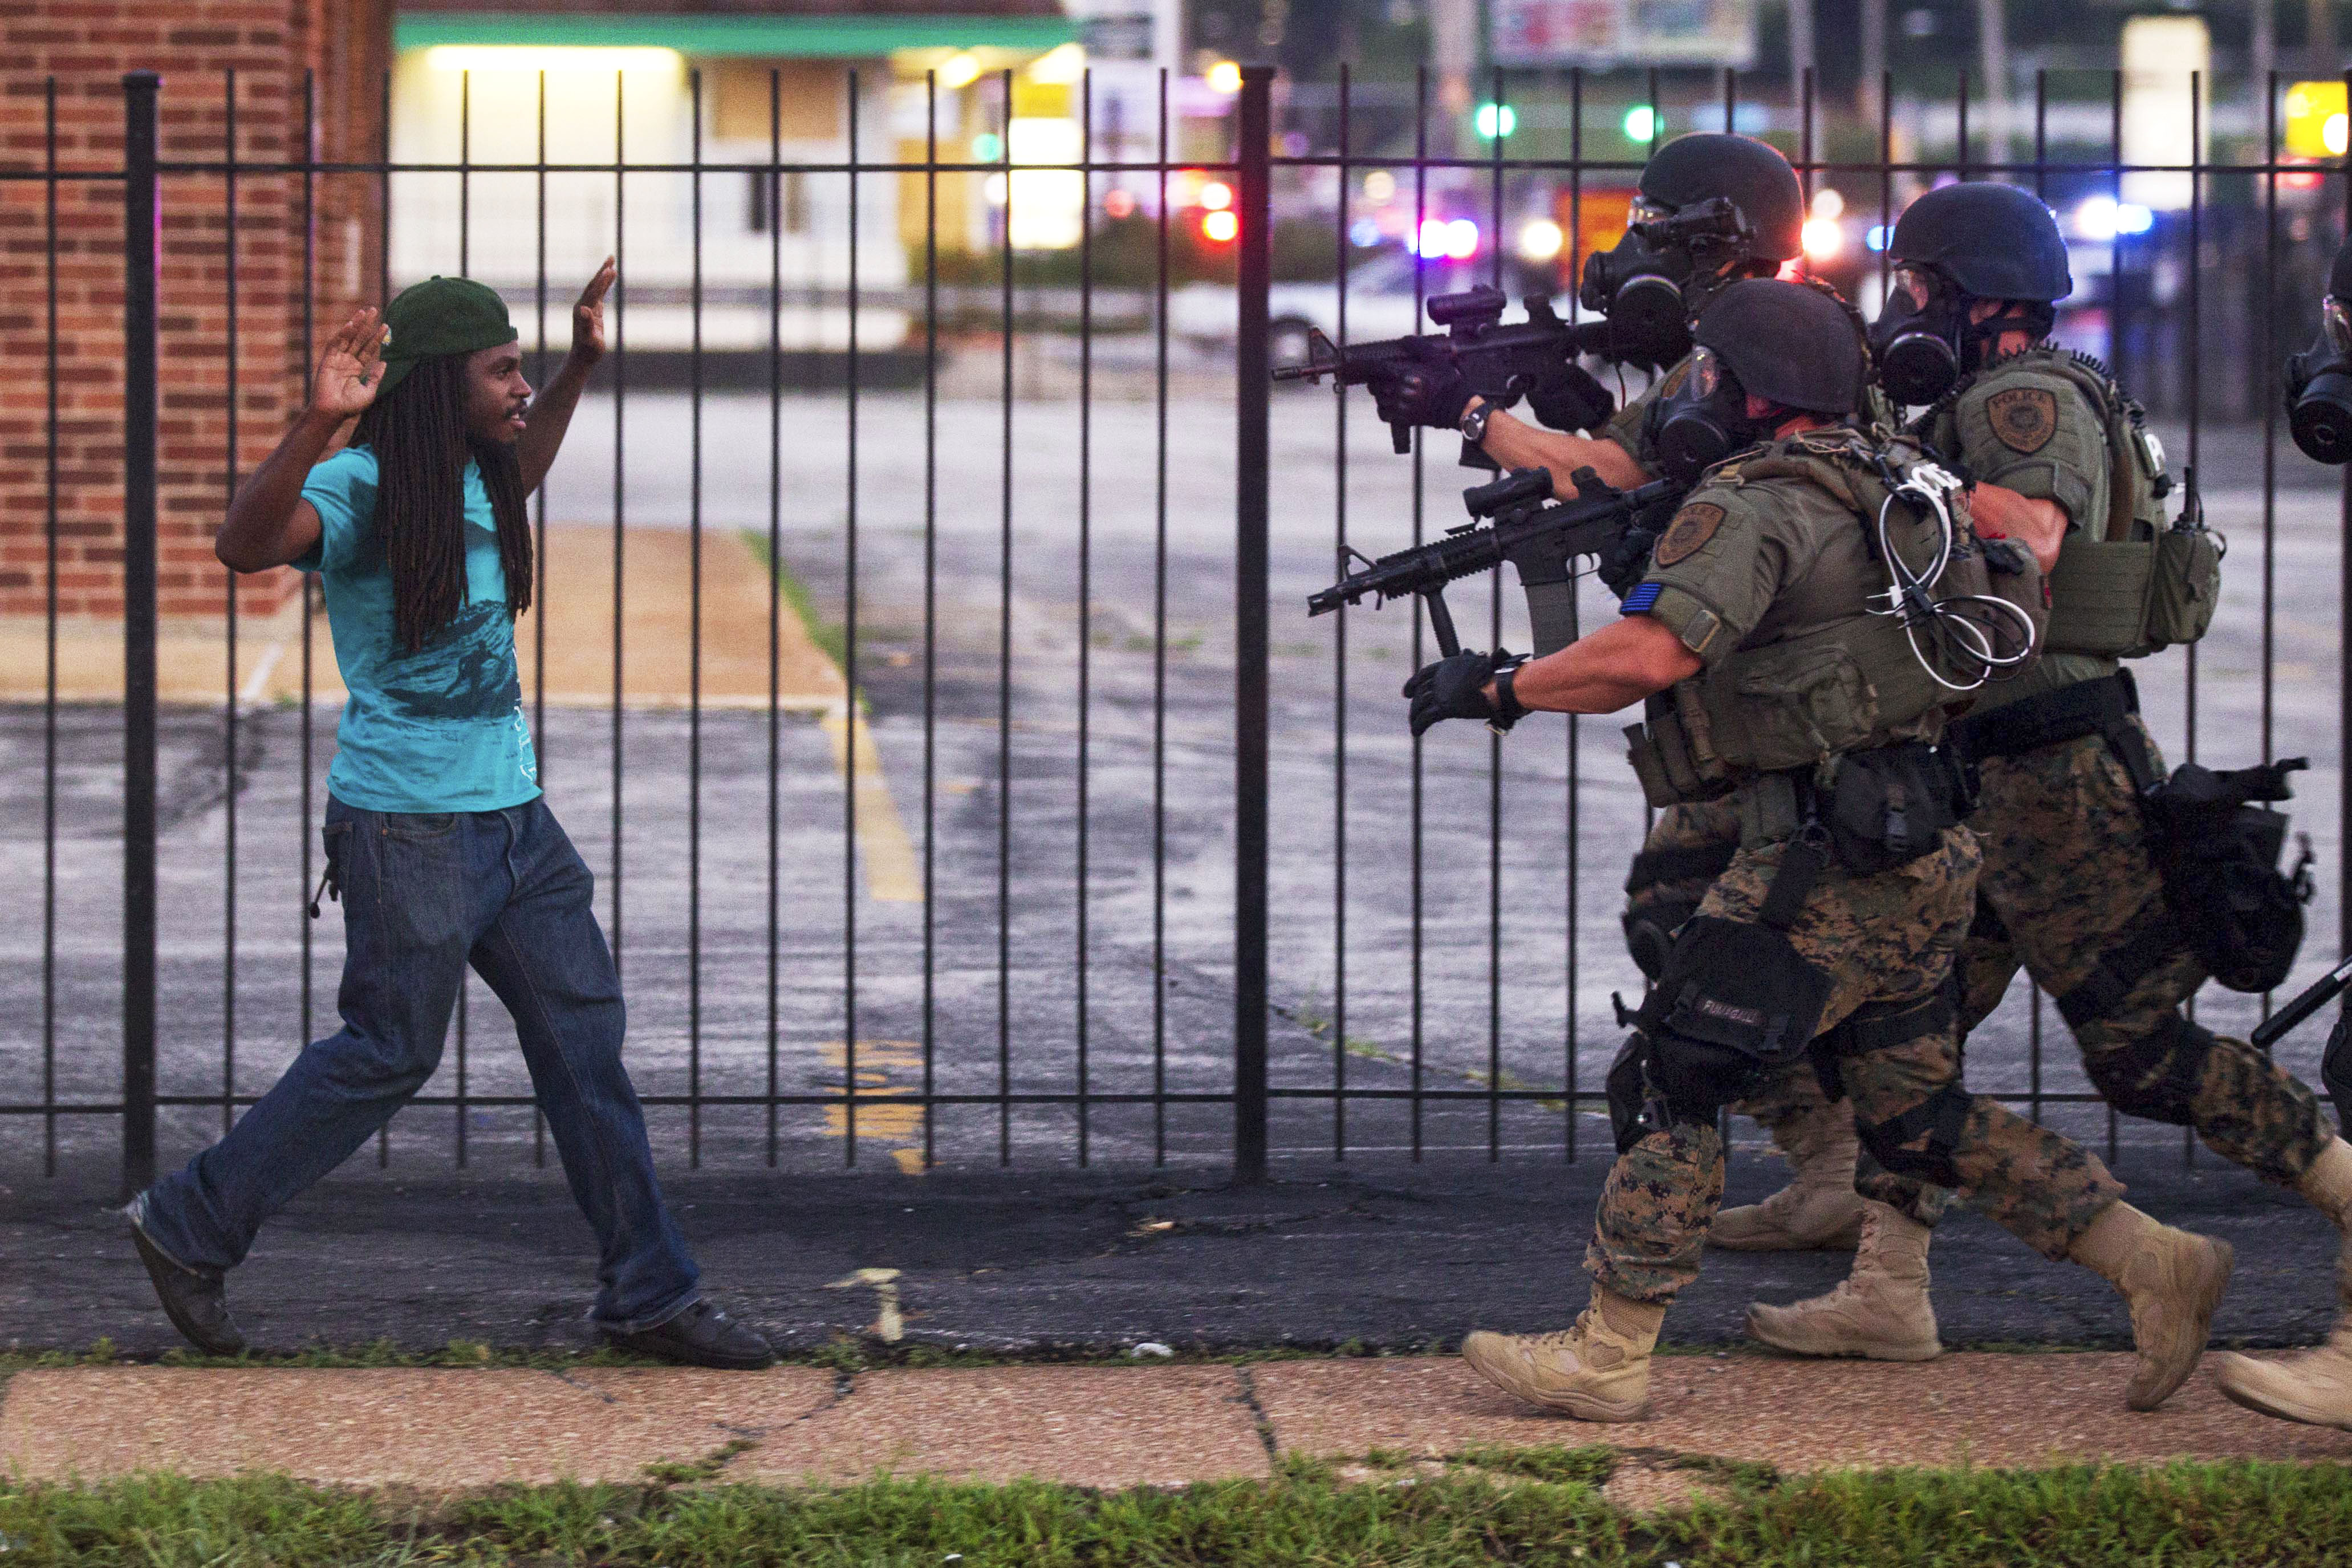 A man backs away as police close in on him during unrest in Ferguson, Mo. following Michael Brown's death, Aug. 11, 2014.